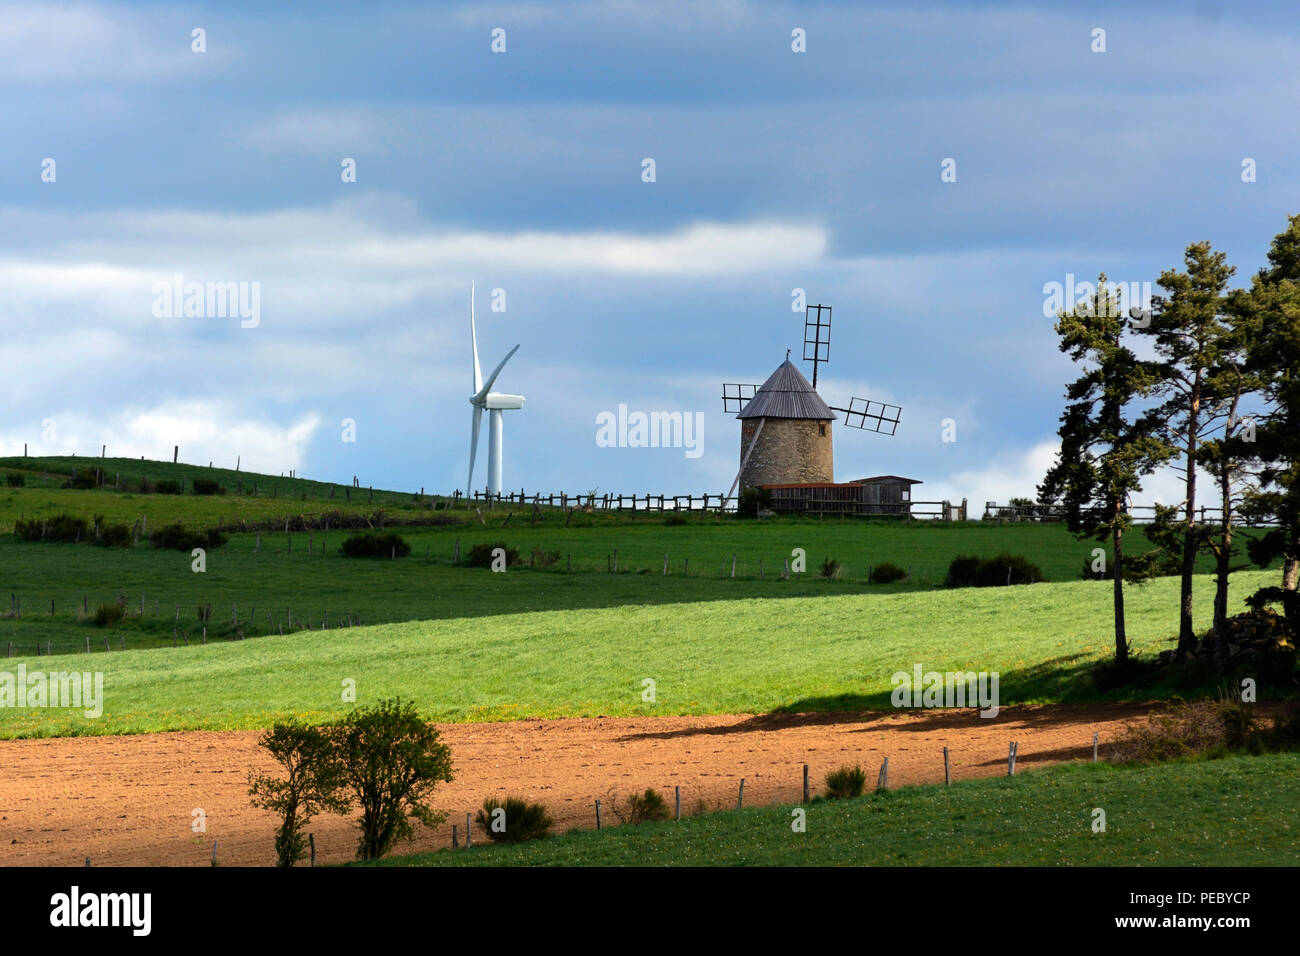 Windmill and wind turbine together in the middle of cultivated fields in summer, Allier windfarm, Haute Loire department, Auvergne, France, Europe - Stock Image